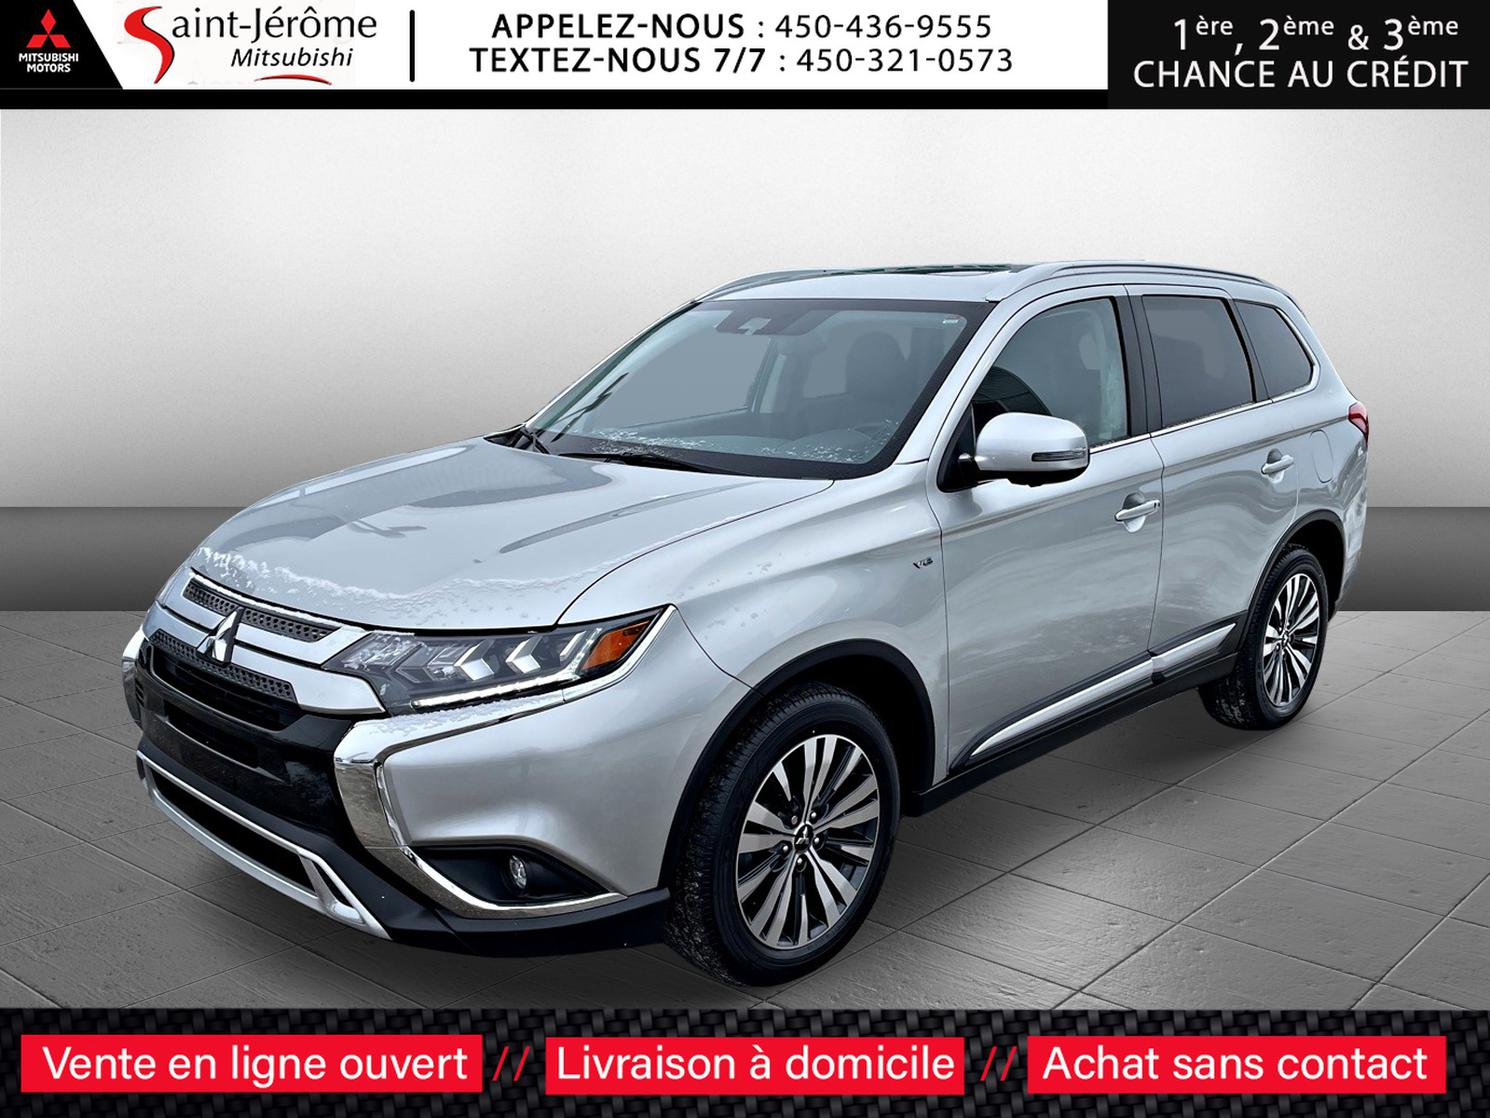 Mitsubishi Outlander GT S-AWC TOÎT OUVRANT + CUIR + CAMÉRA 360 + MAGS 18 PO +++ 2020